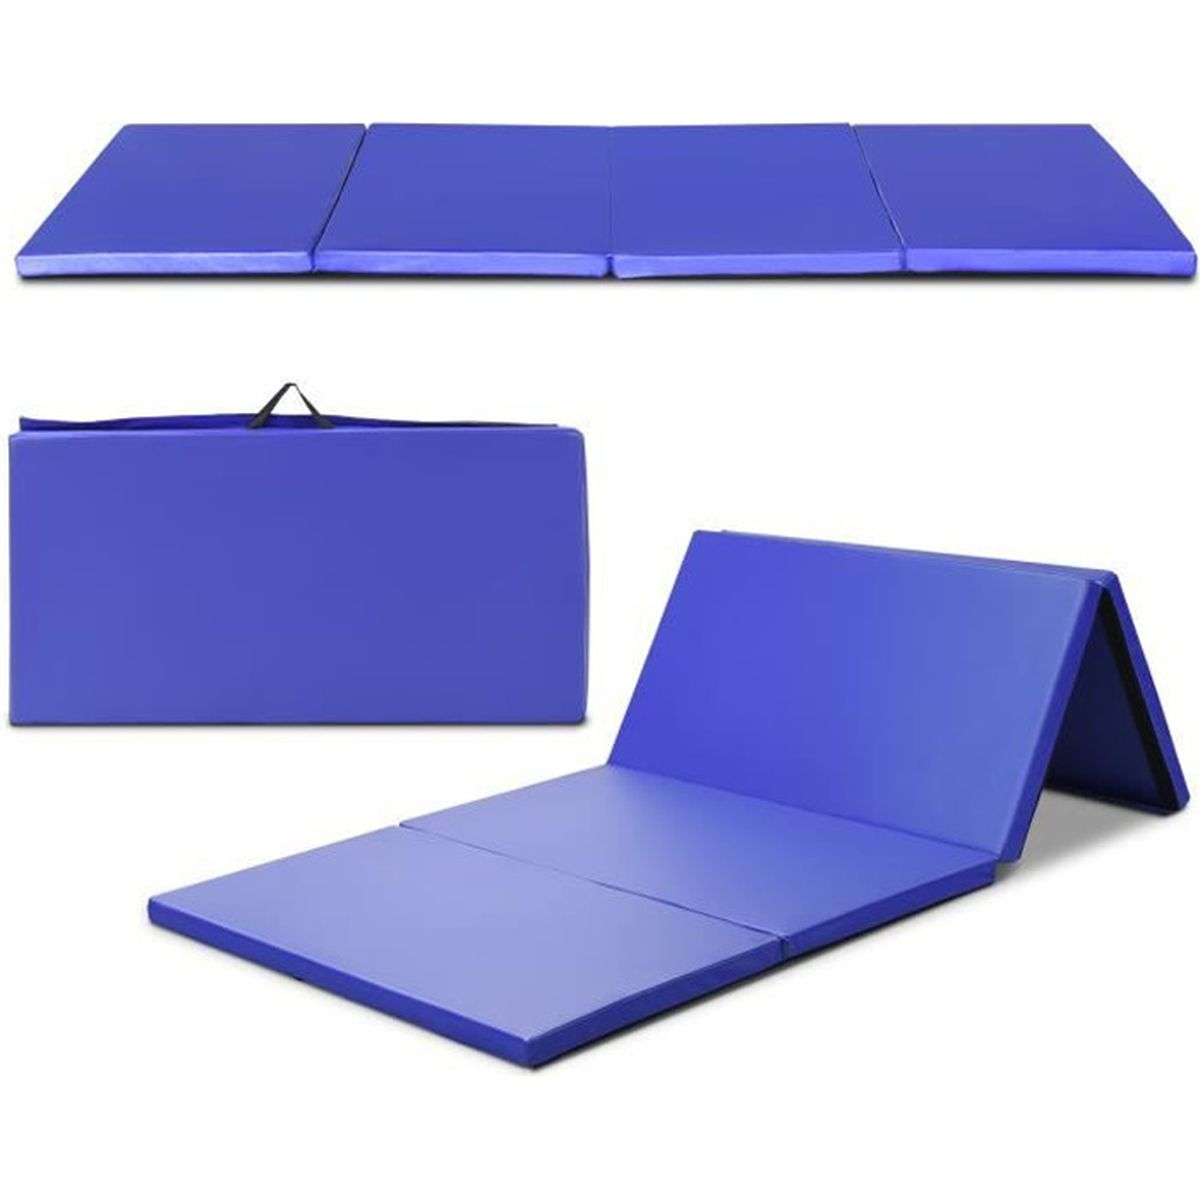 tapis de sol gymnastique pliable portable bleu natte de gym matelas prix pas cher cdiscount. Black Bedroom Furniture Sets. Home Design Ideas